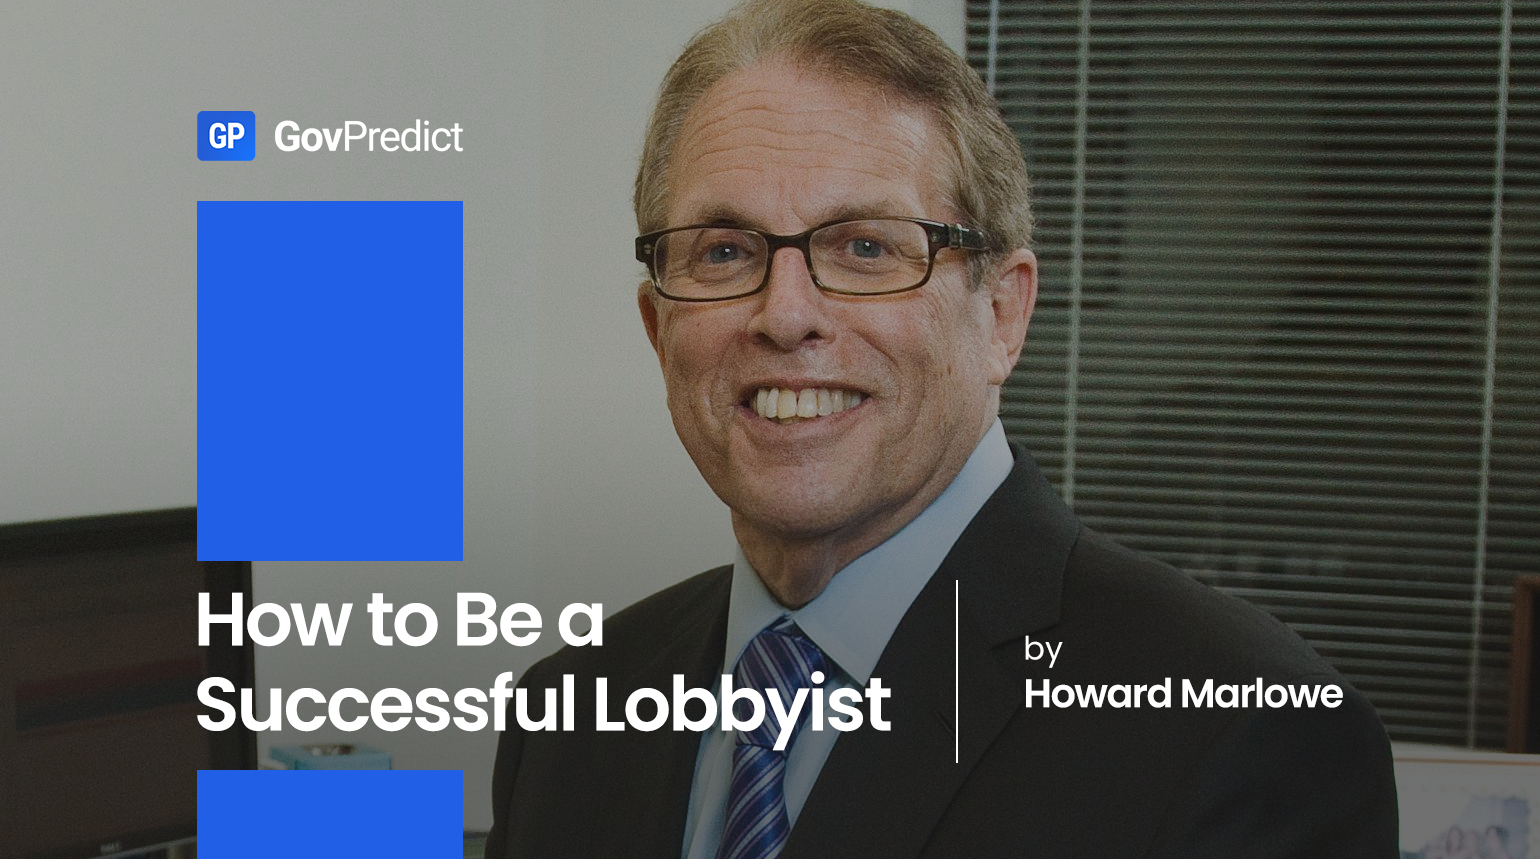 How to Be a Successful Lobbyist